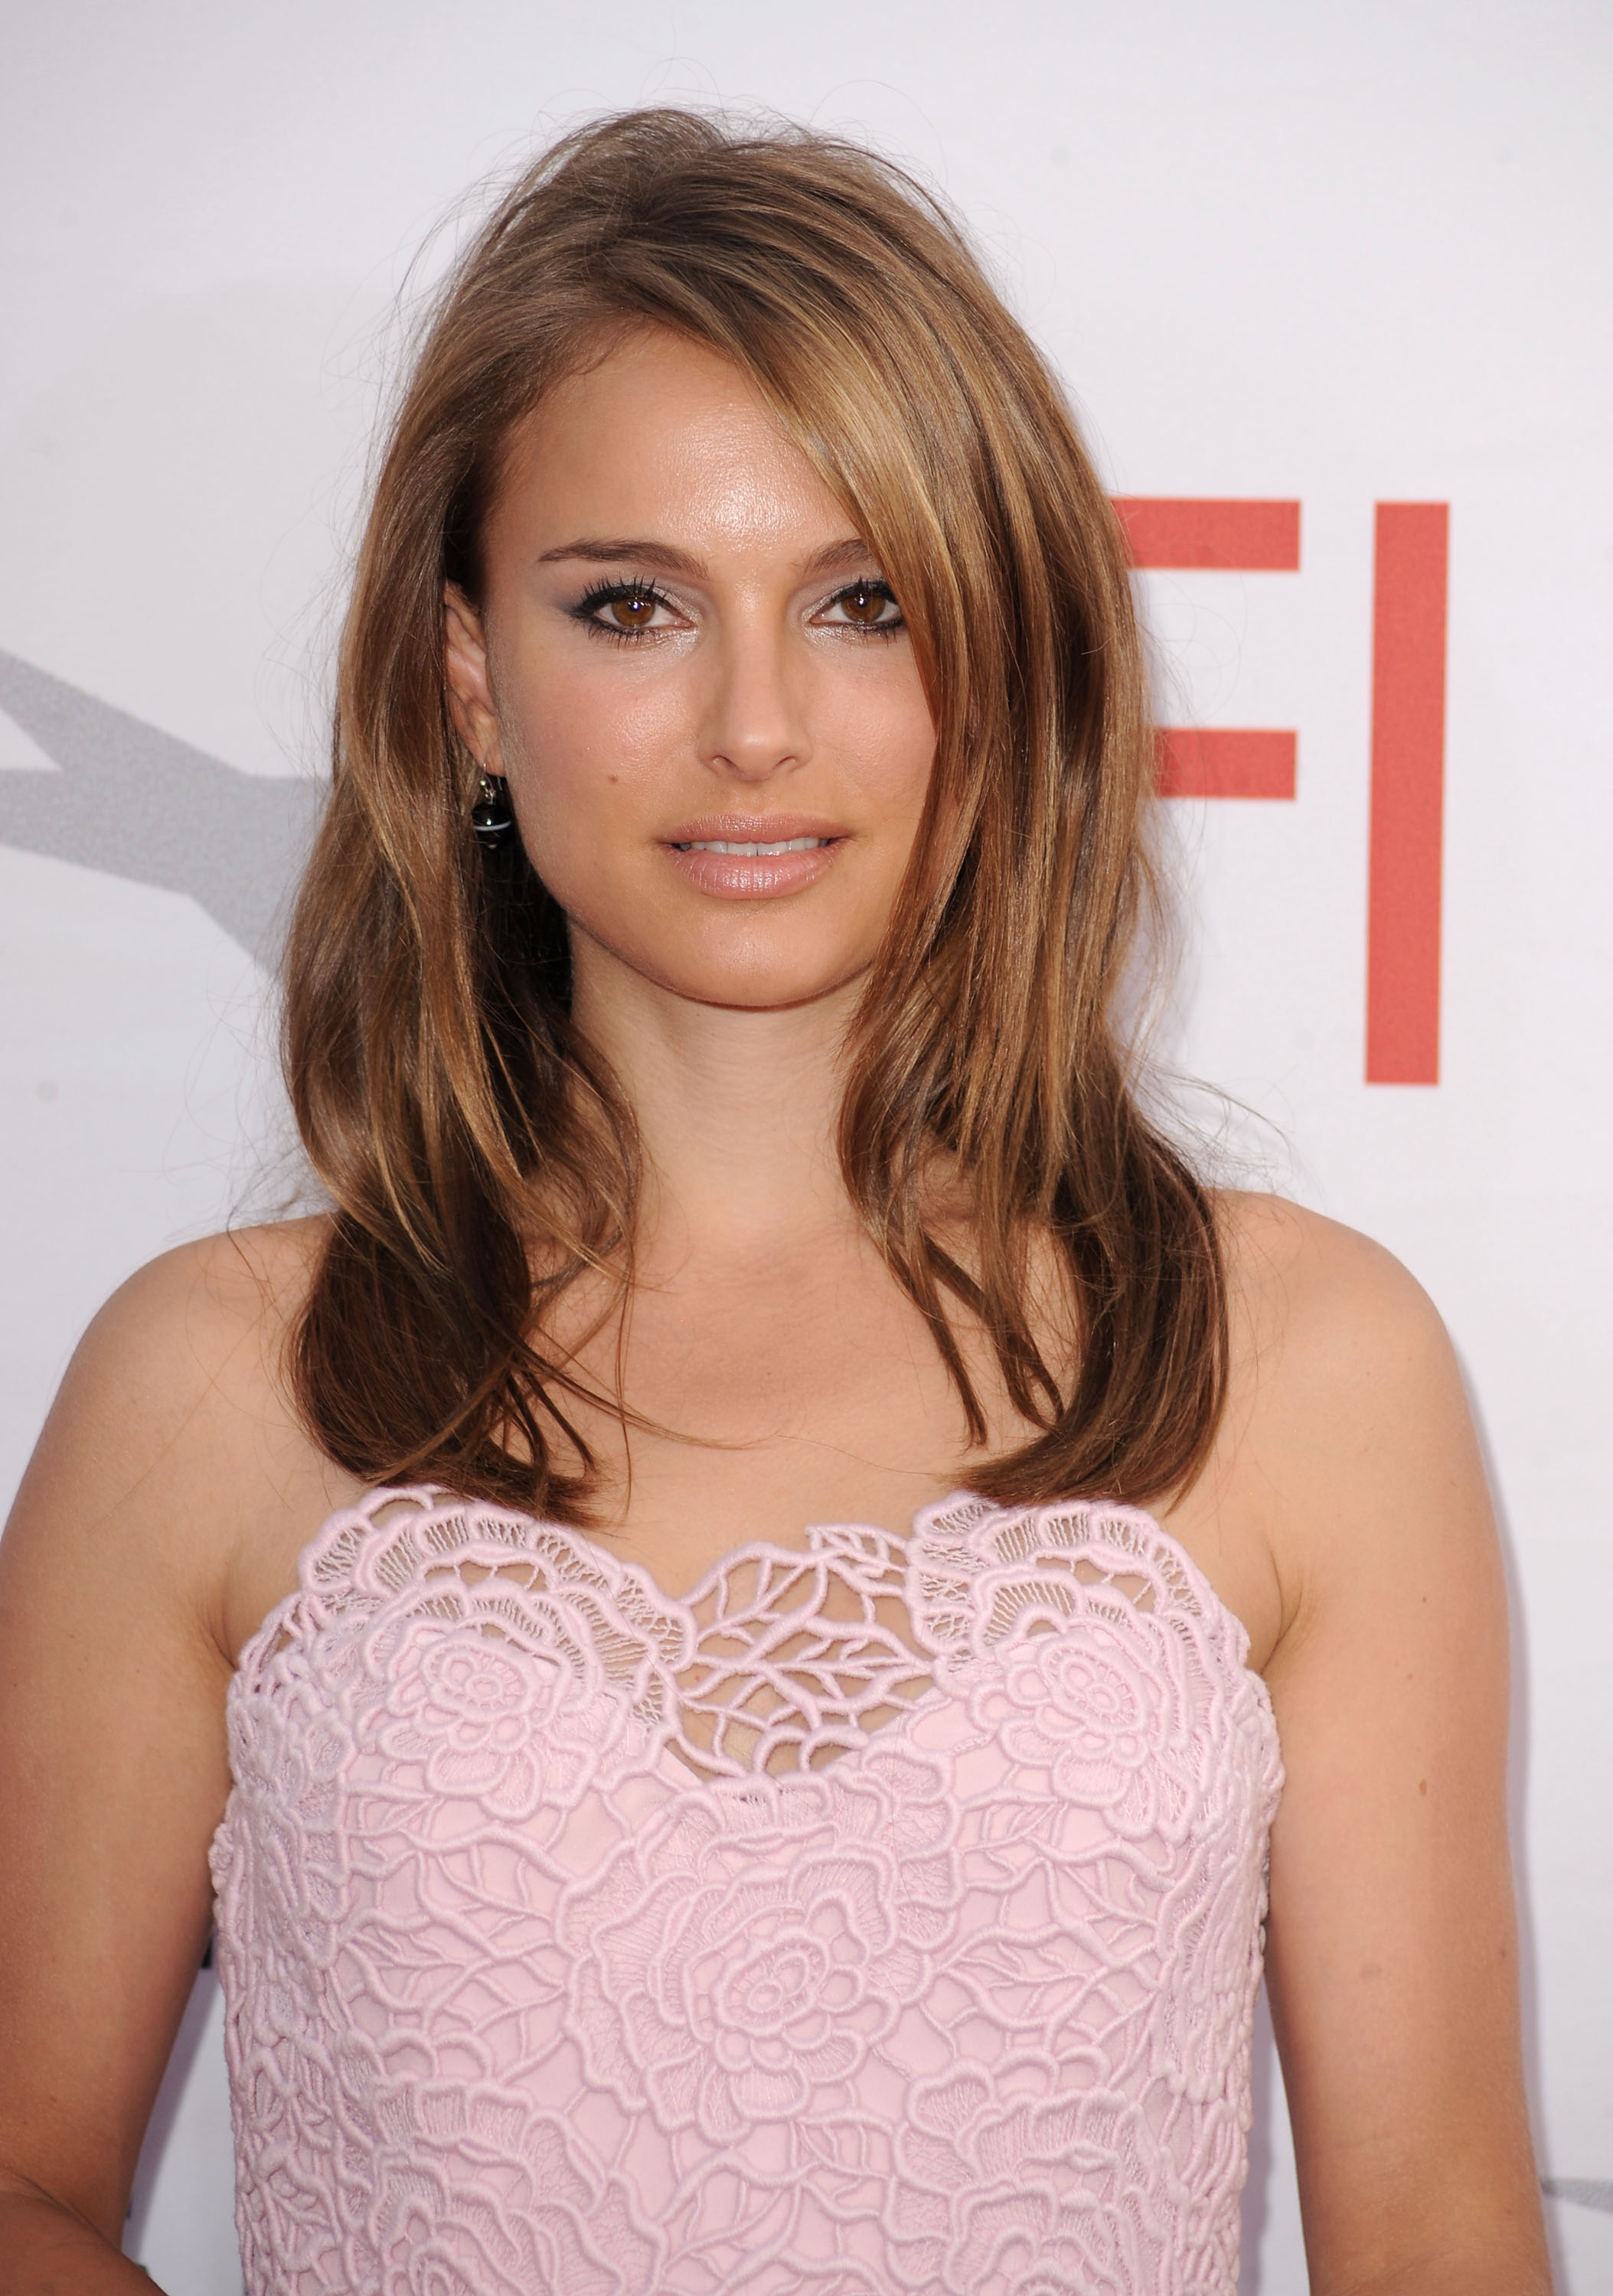 02204_Natalie_Portman_38th_afi_life_achievement_award_073_122_1095lo.jpg